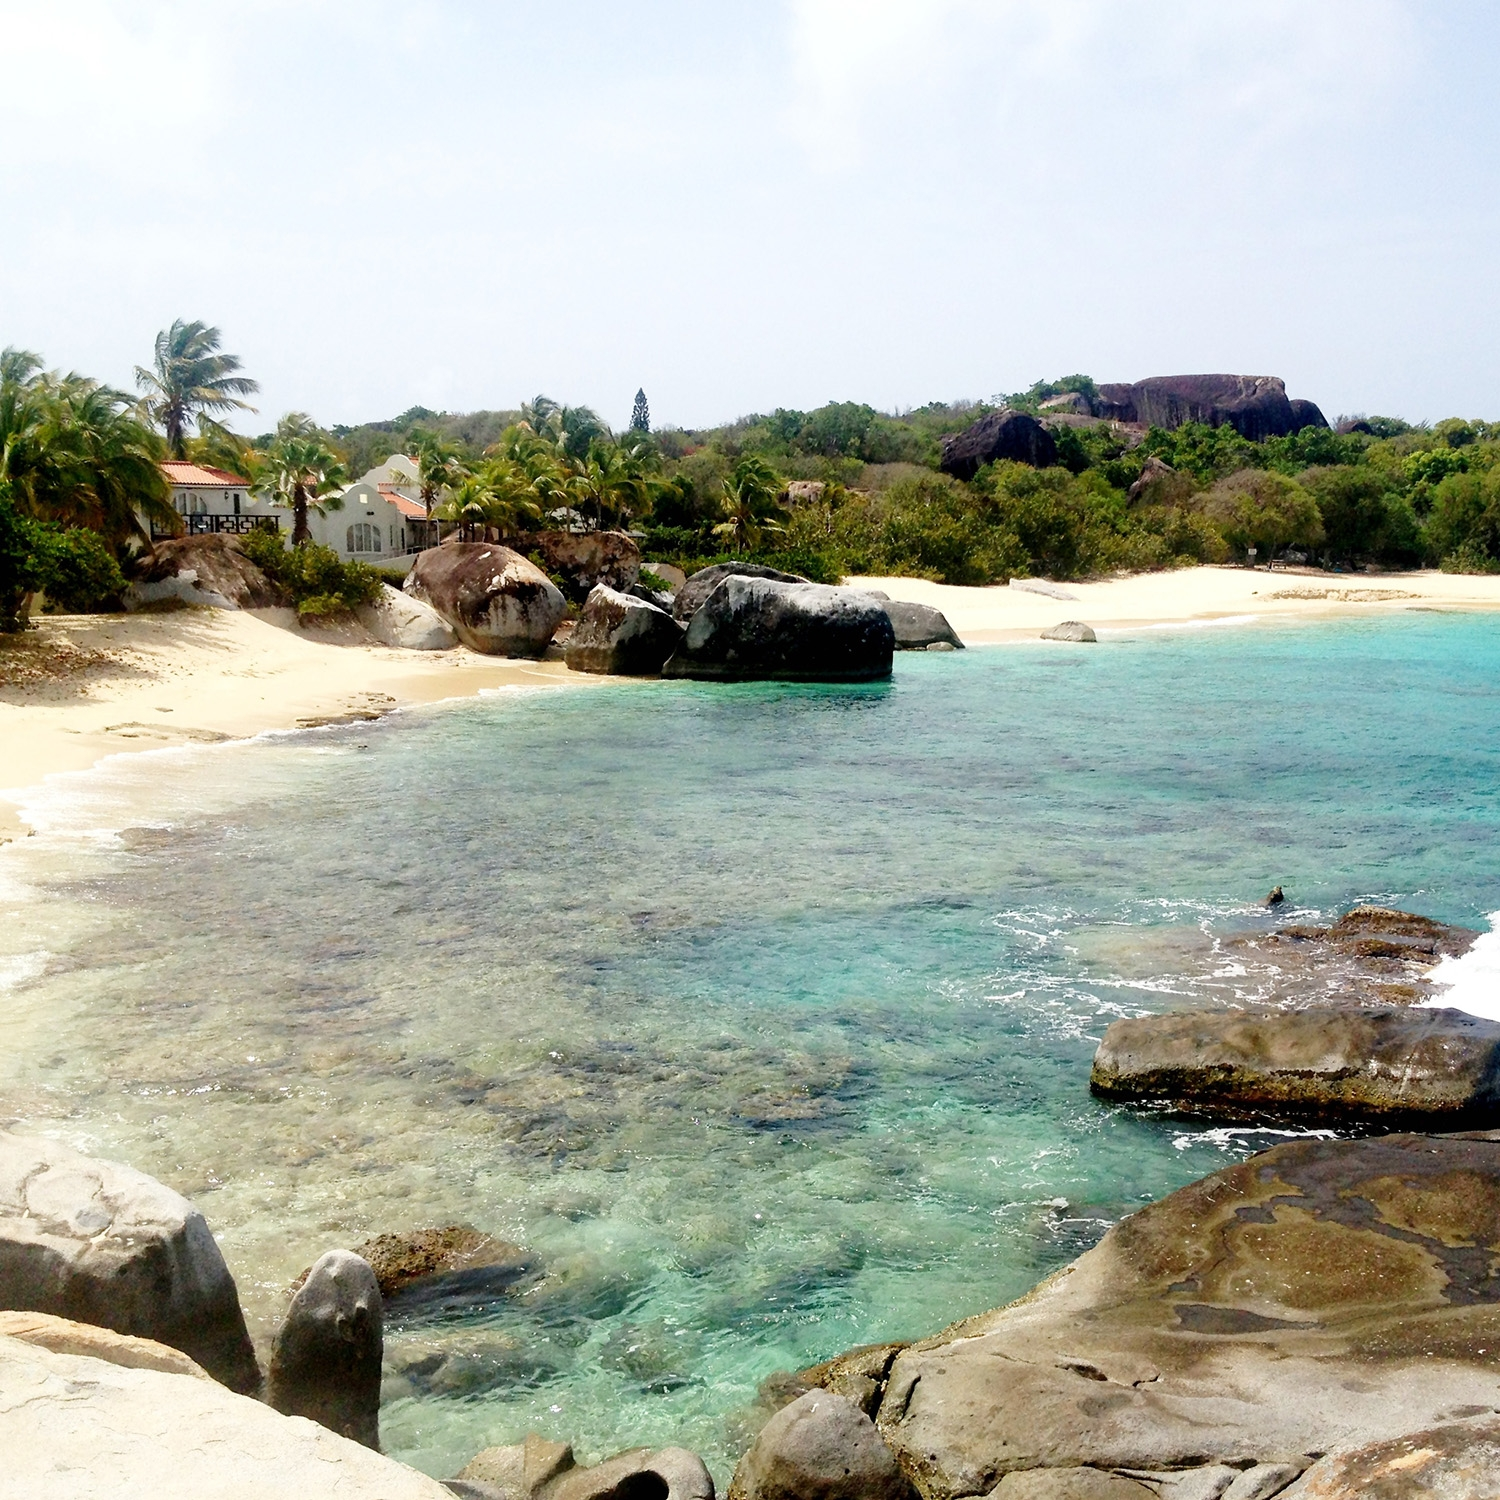 The clear water and rocky shore of Virgin Gorda